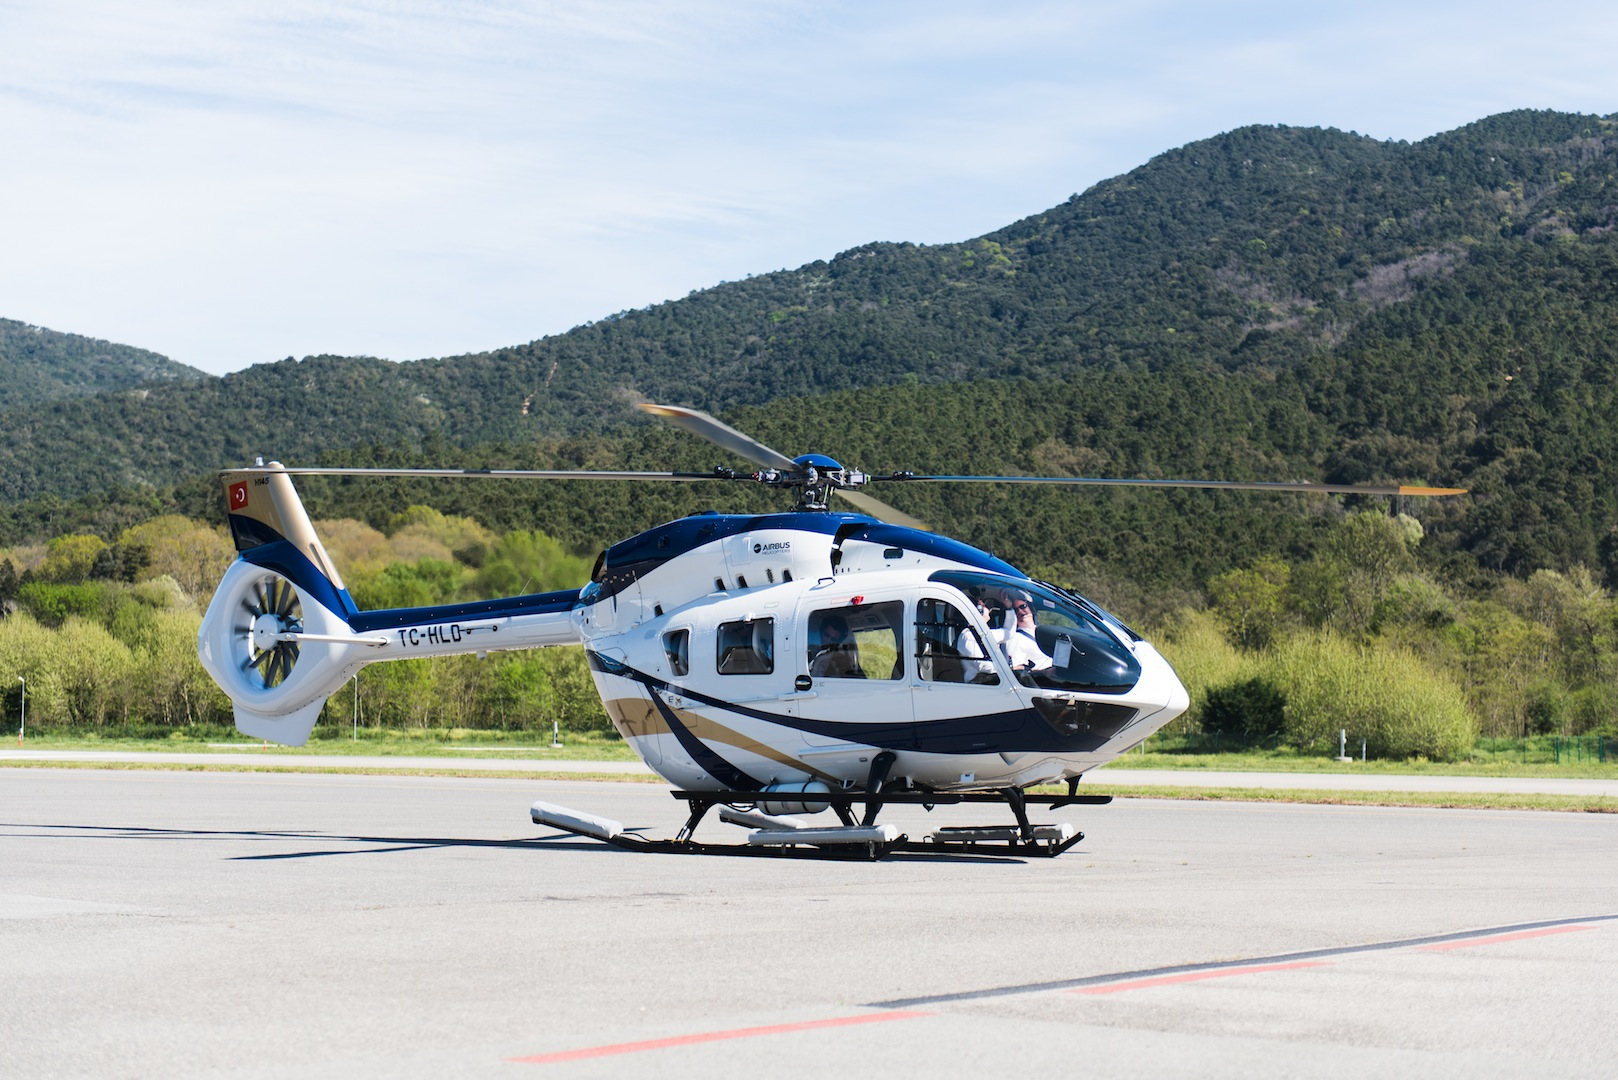 bell helicopter cost with Airbus Helicopters H145 By Mercedes Benz Style Review on Showthread additionally Nintendo Of America Headquarters likewise 22533 as well Airbus Helicopters H145 By Mercedes Benz Style Review together with 955.